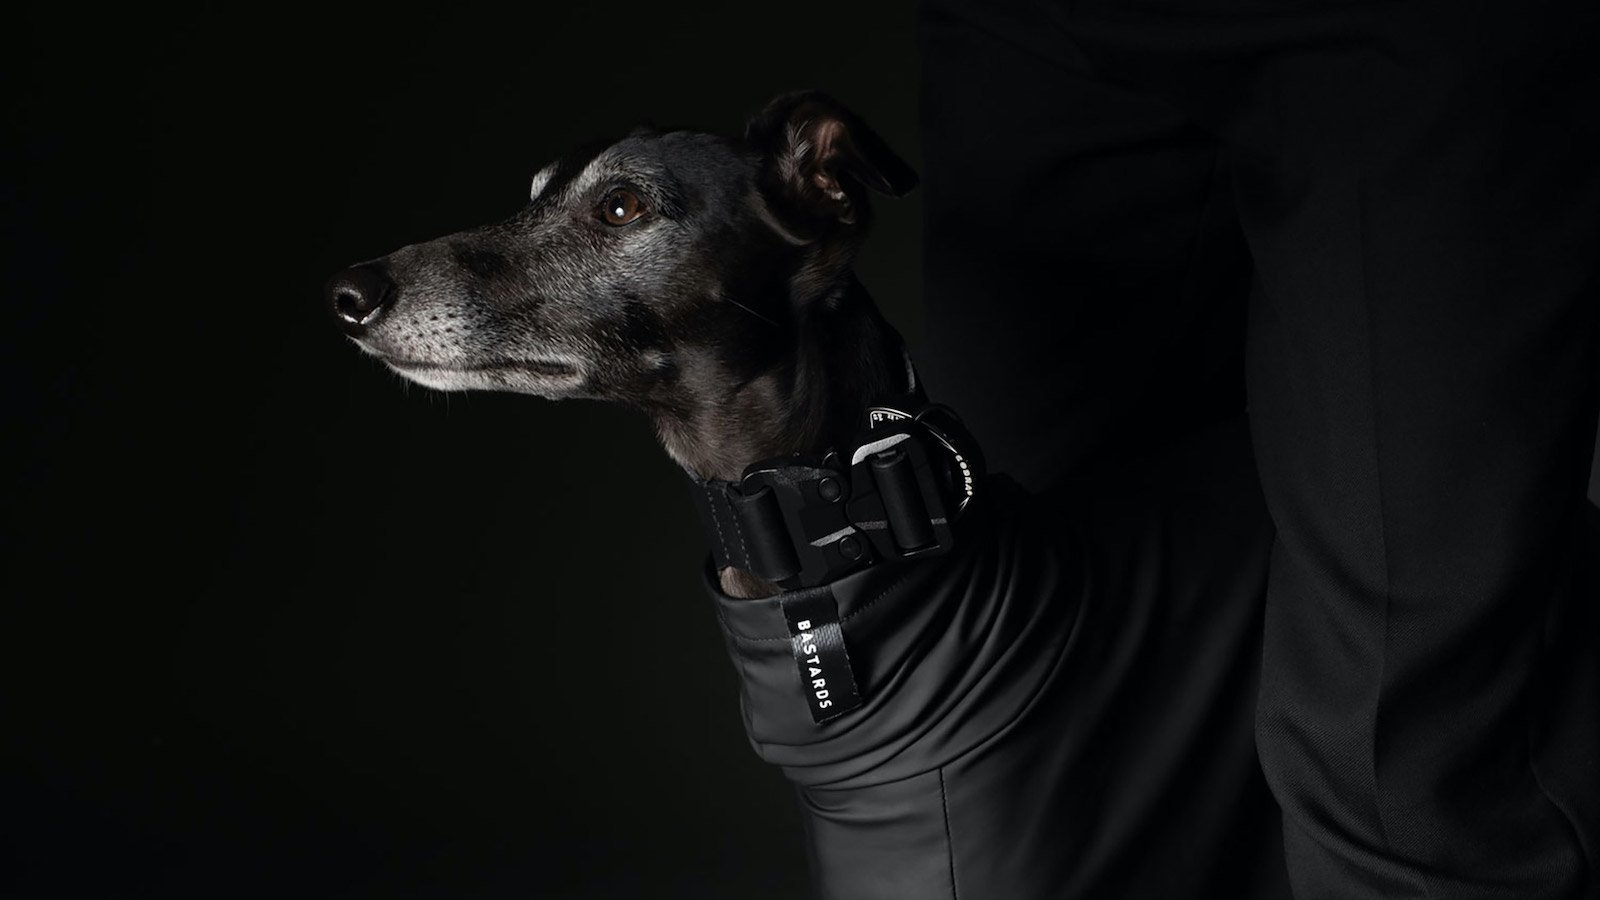 BASTARDS dog wear collection features 3 comfortable, stylish designs that suit all dogs